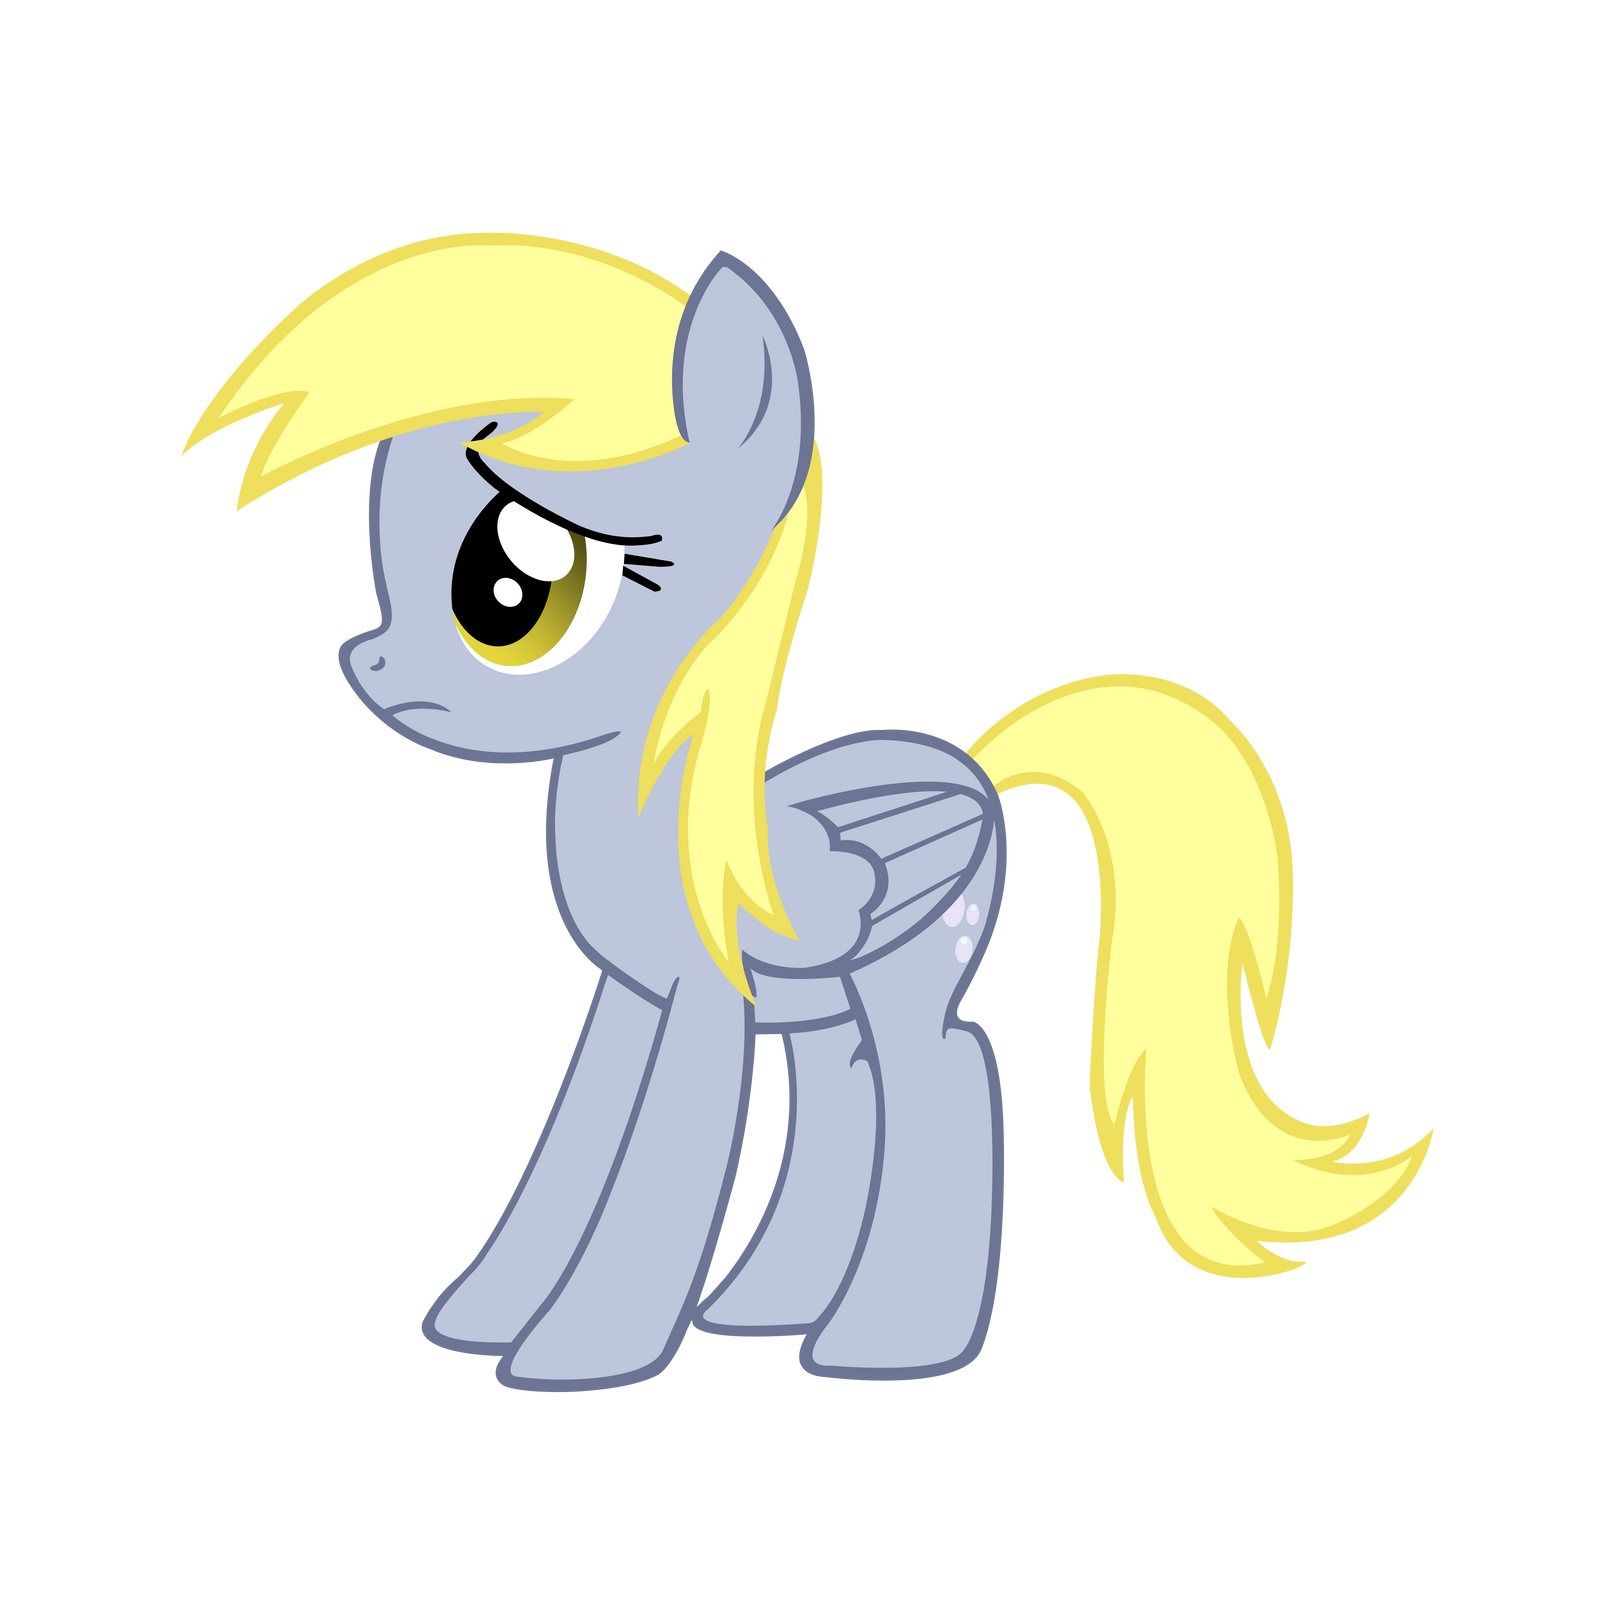 Derpy Hooves by lolke12 on DeviantArt